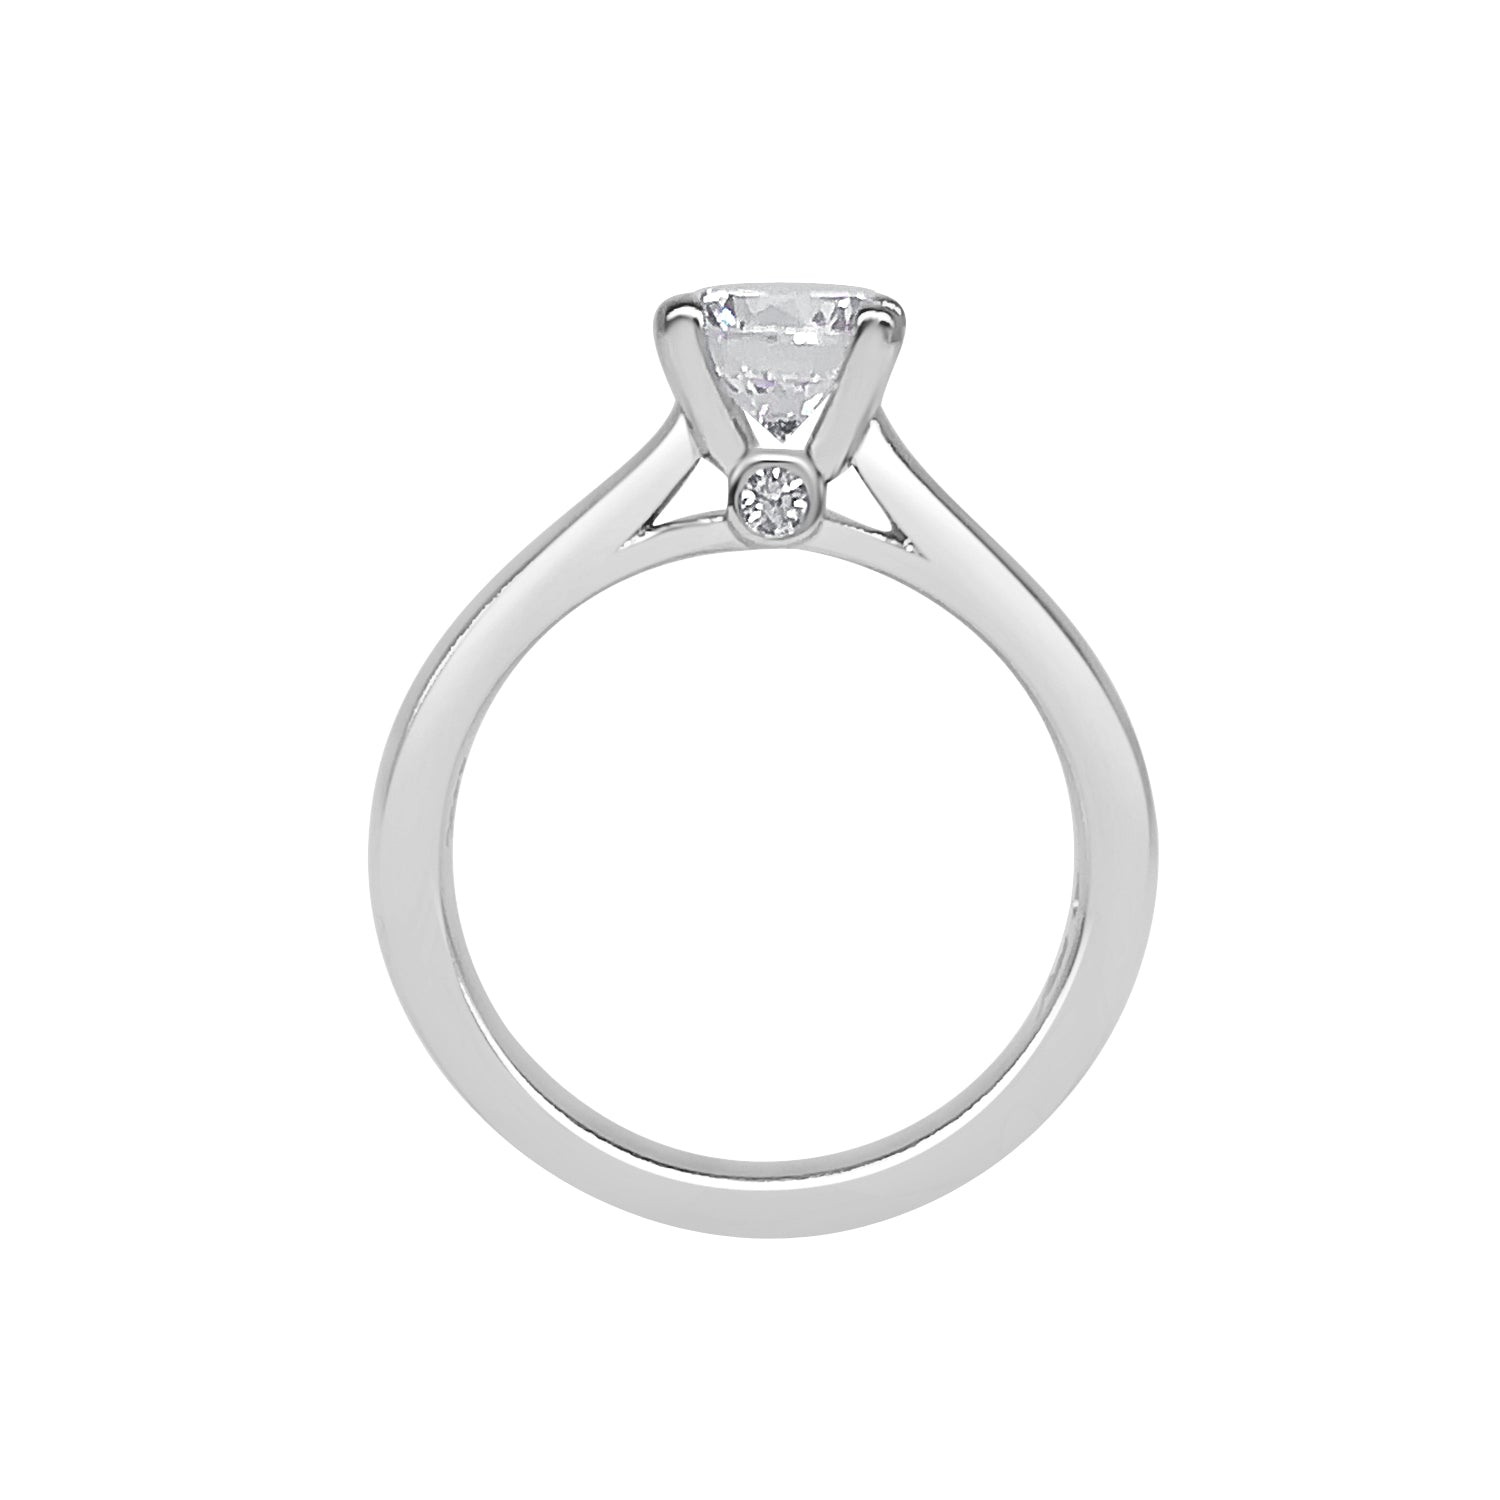 Fana Polished 14 Karat White Gold Solitaire Engagement Mounting